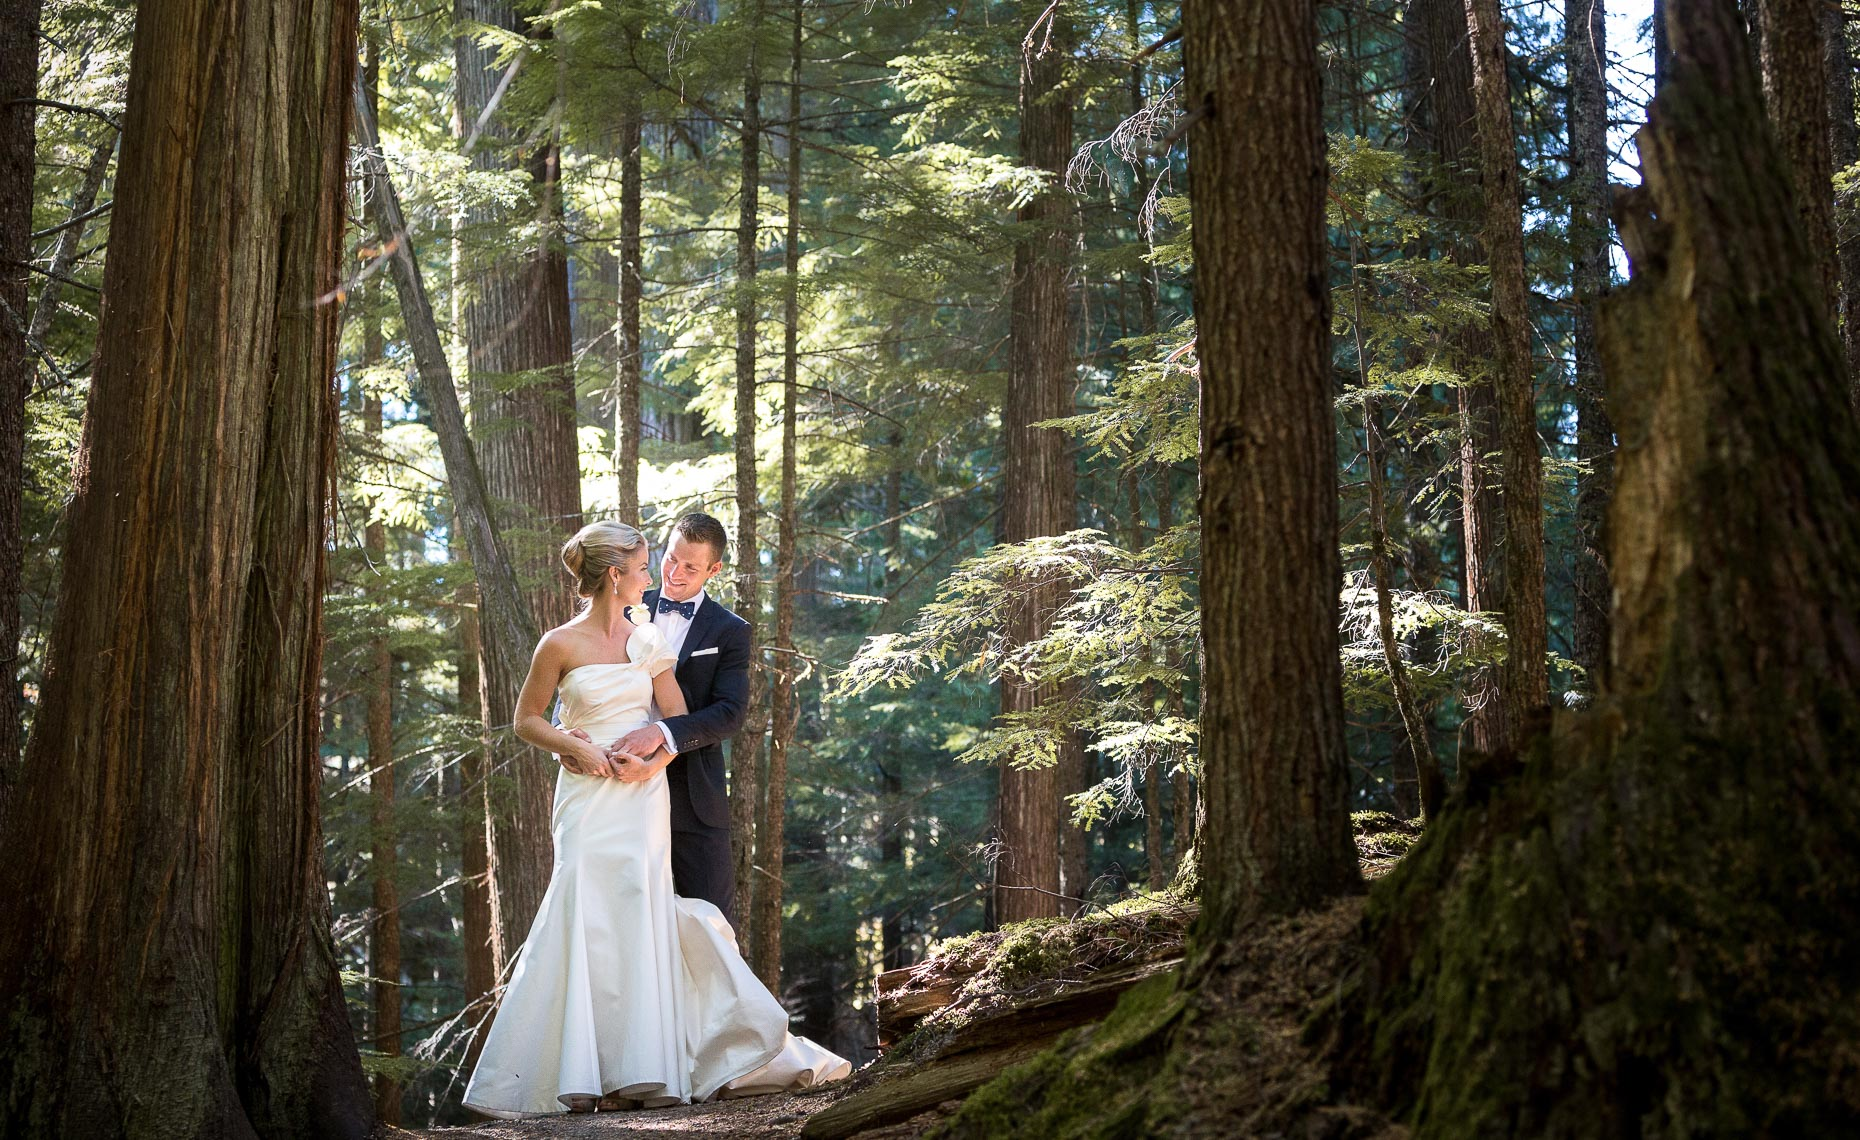 Bride and groom wedding portrait in the forest of Whistler